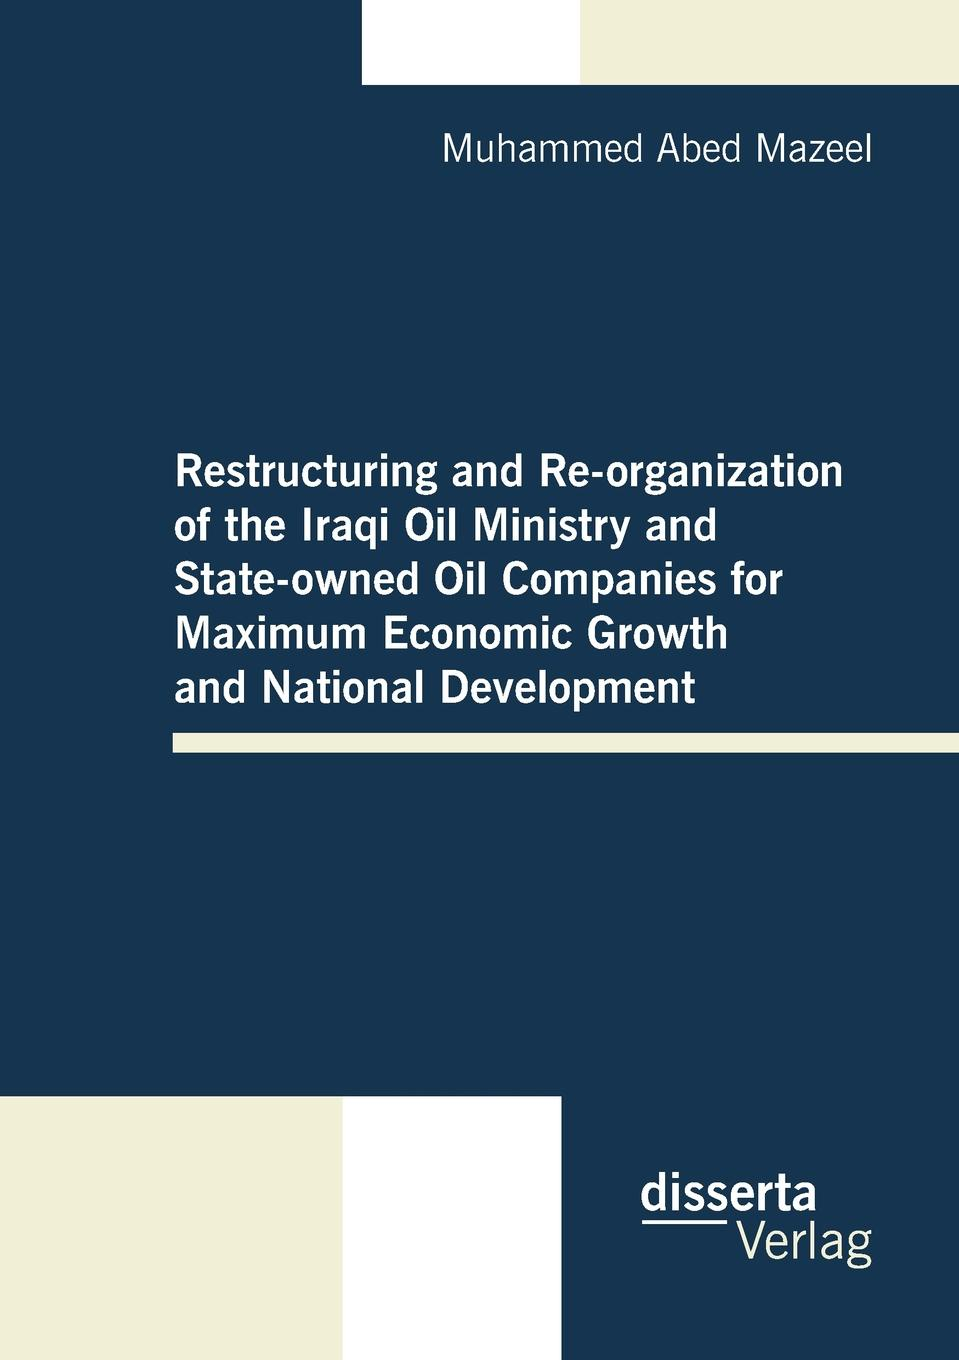 Restructuring and Re-organization of the Iraqi Oil Ministry and State-owned Oil Companies for Maximum Economic Growth and National Development The first steps towards restructuring reorganizing...